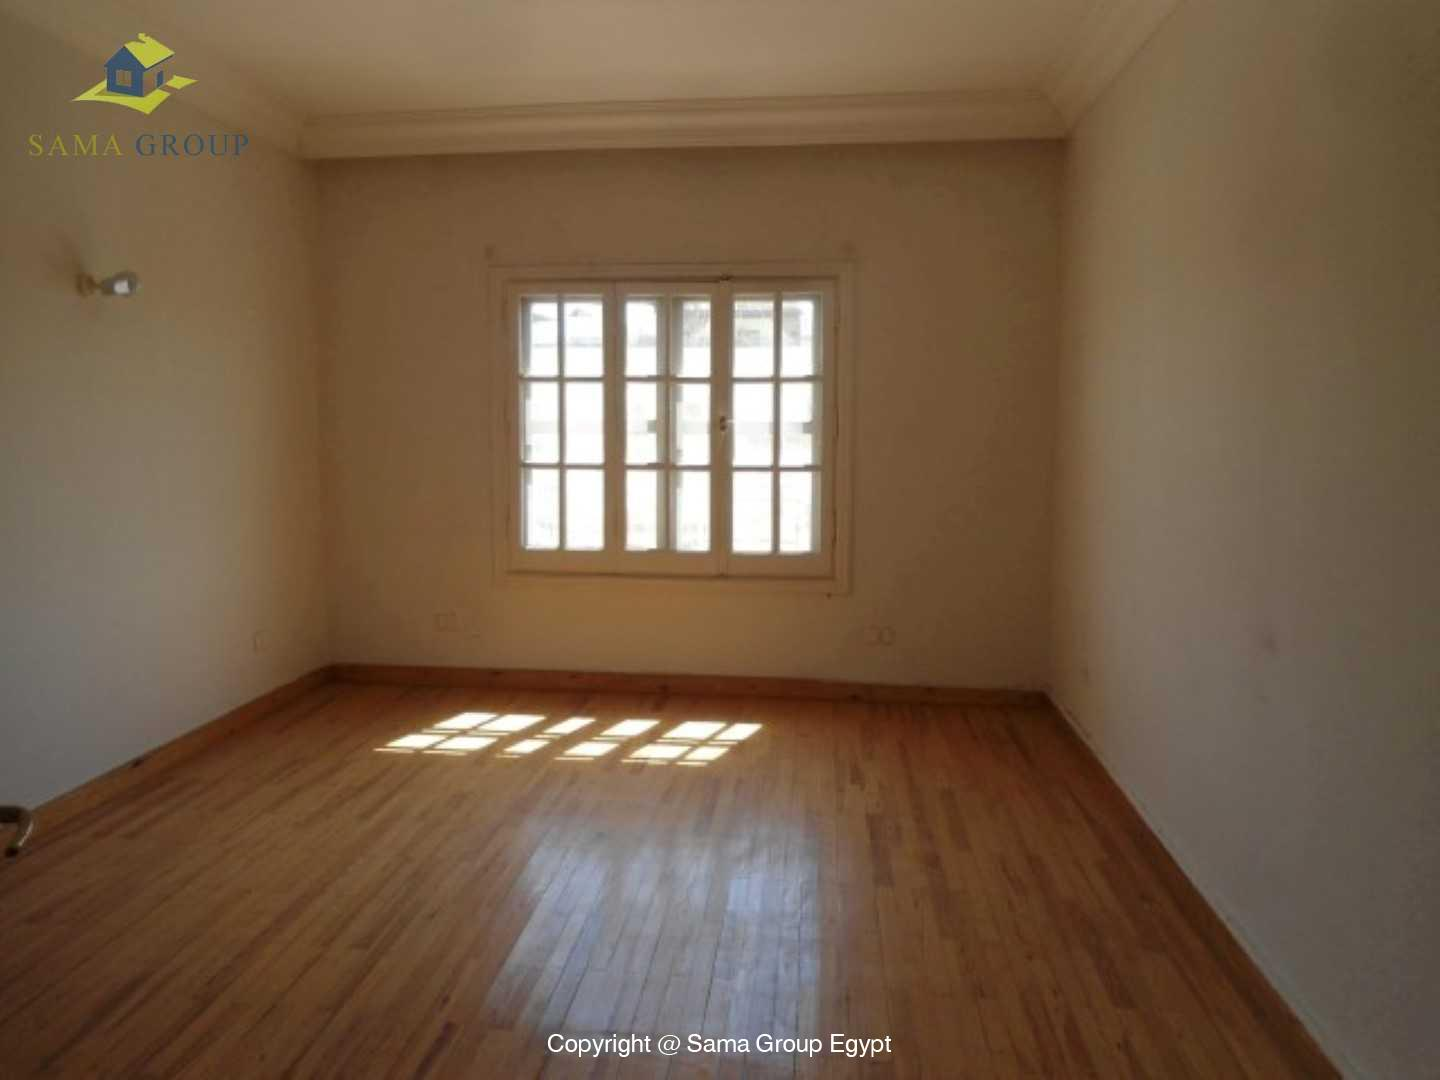 Penthouse Triplex with Swimming Pool For Rent In Maadi,Semi furnished,Penthouse NO #14